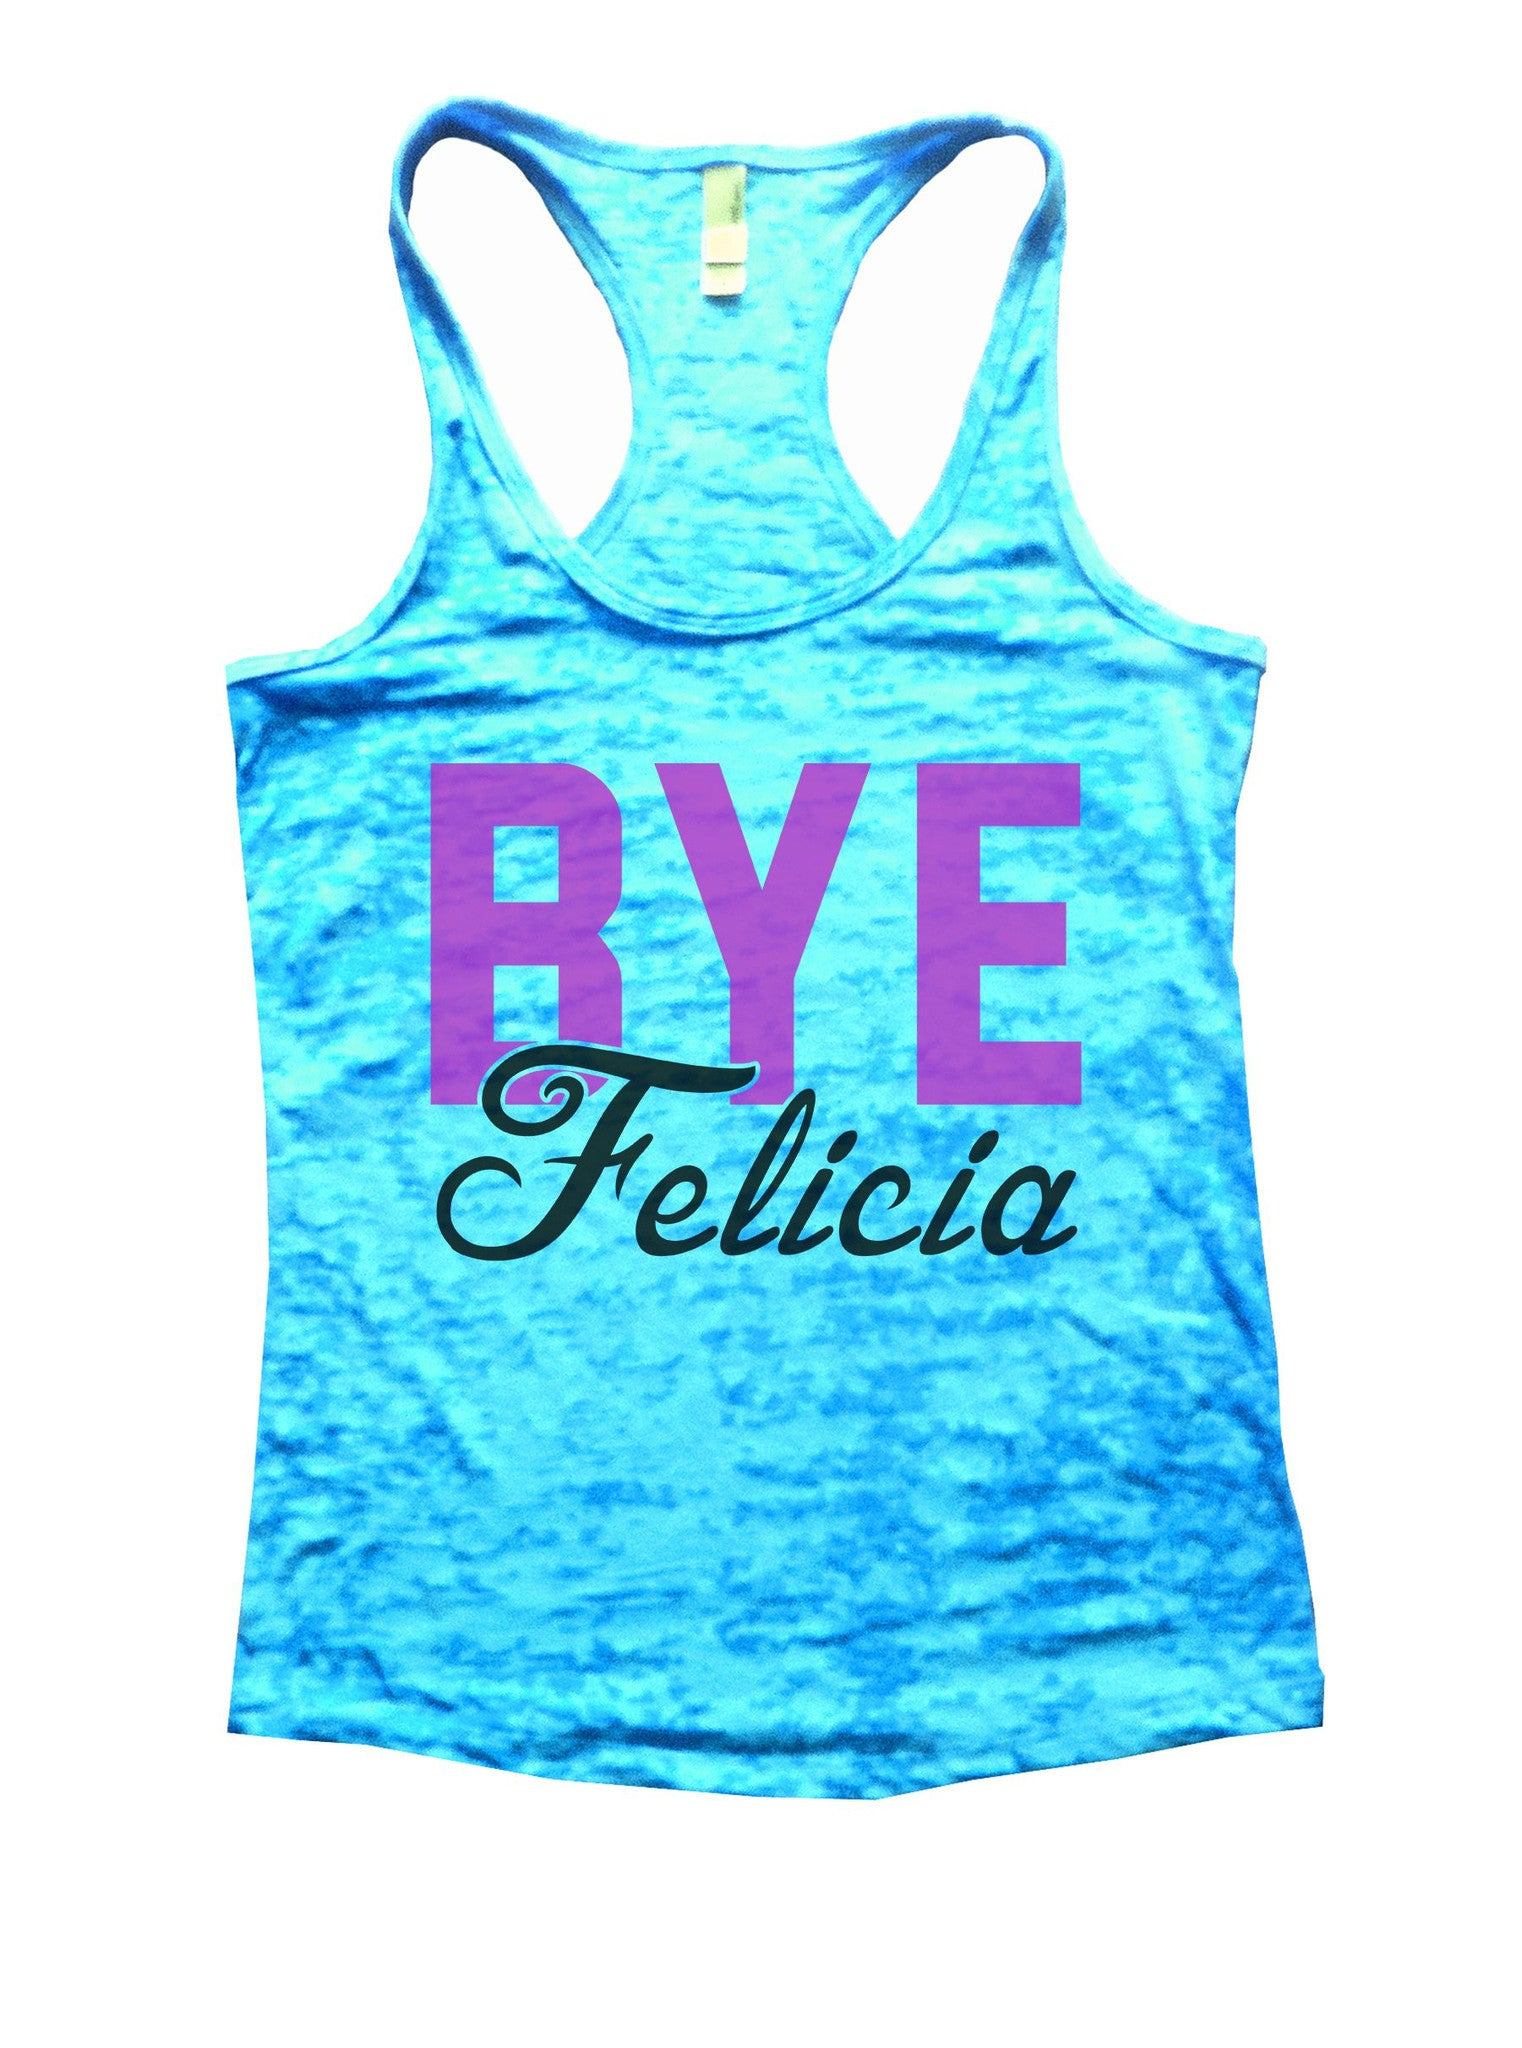 Bye Felicia Burnout Tank Top By BurnoutTankTops.com - 1092 - Funny Shirts Tank Tops Burnouts and Triblends  - 4